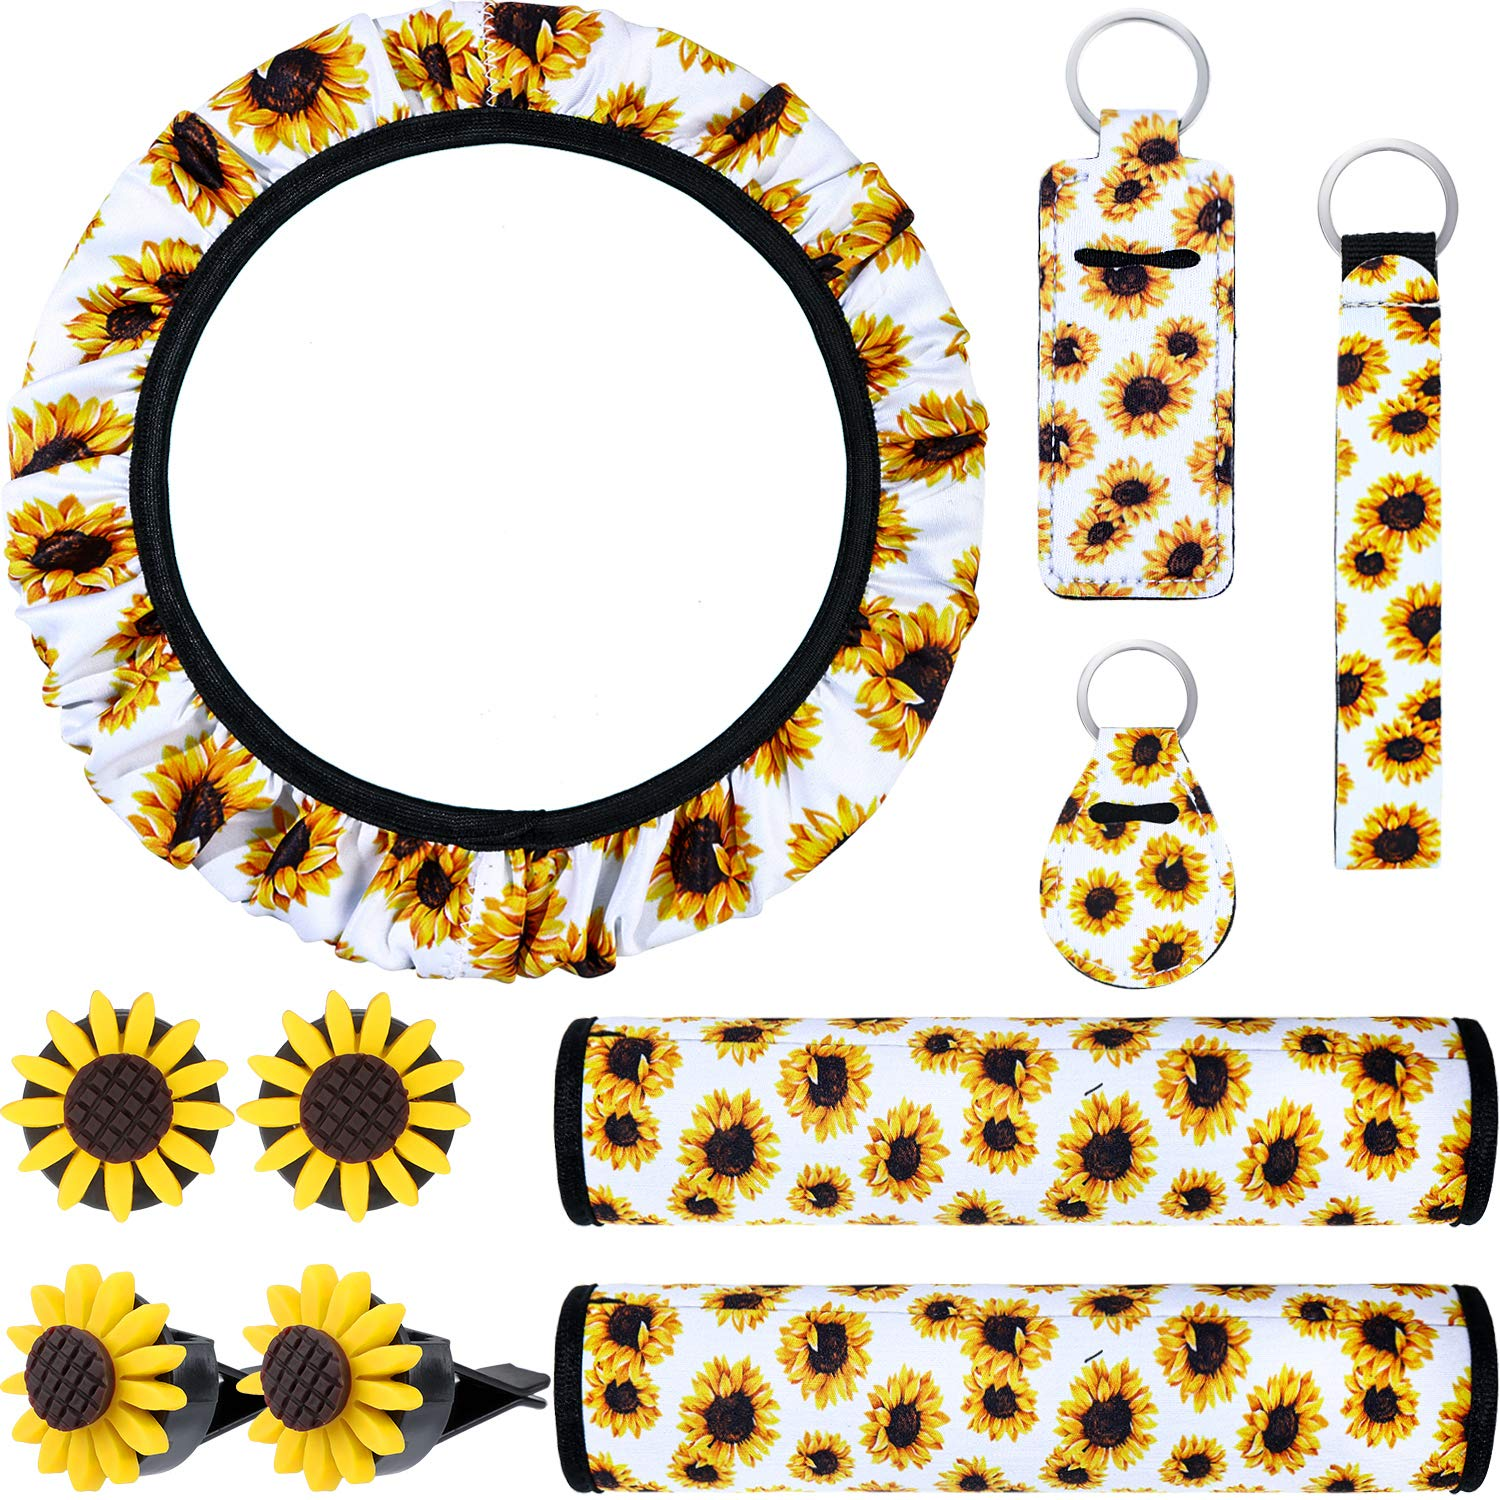 10 Pieces Sunflower Car Accessories Set Include Sunflower Steering Wheel Cover, Cute Sunflowers Keyring, Car Vent Decorations and Seat Belt Shoulder Pads (White Background)